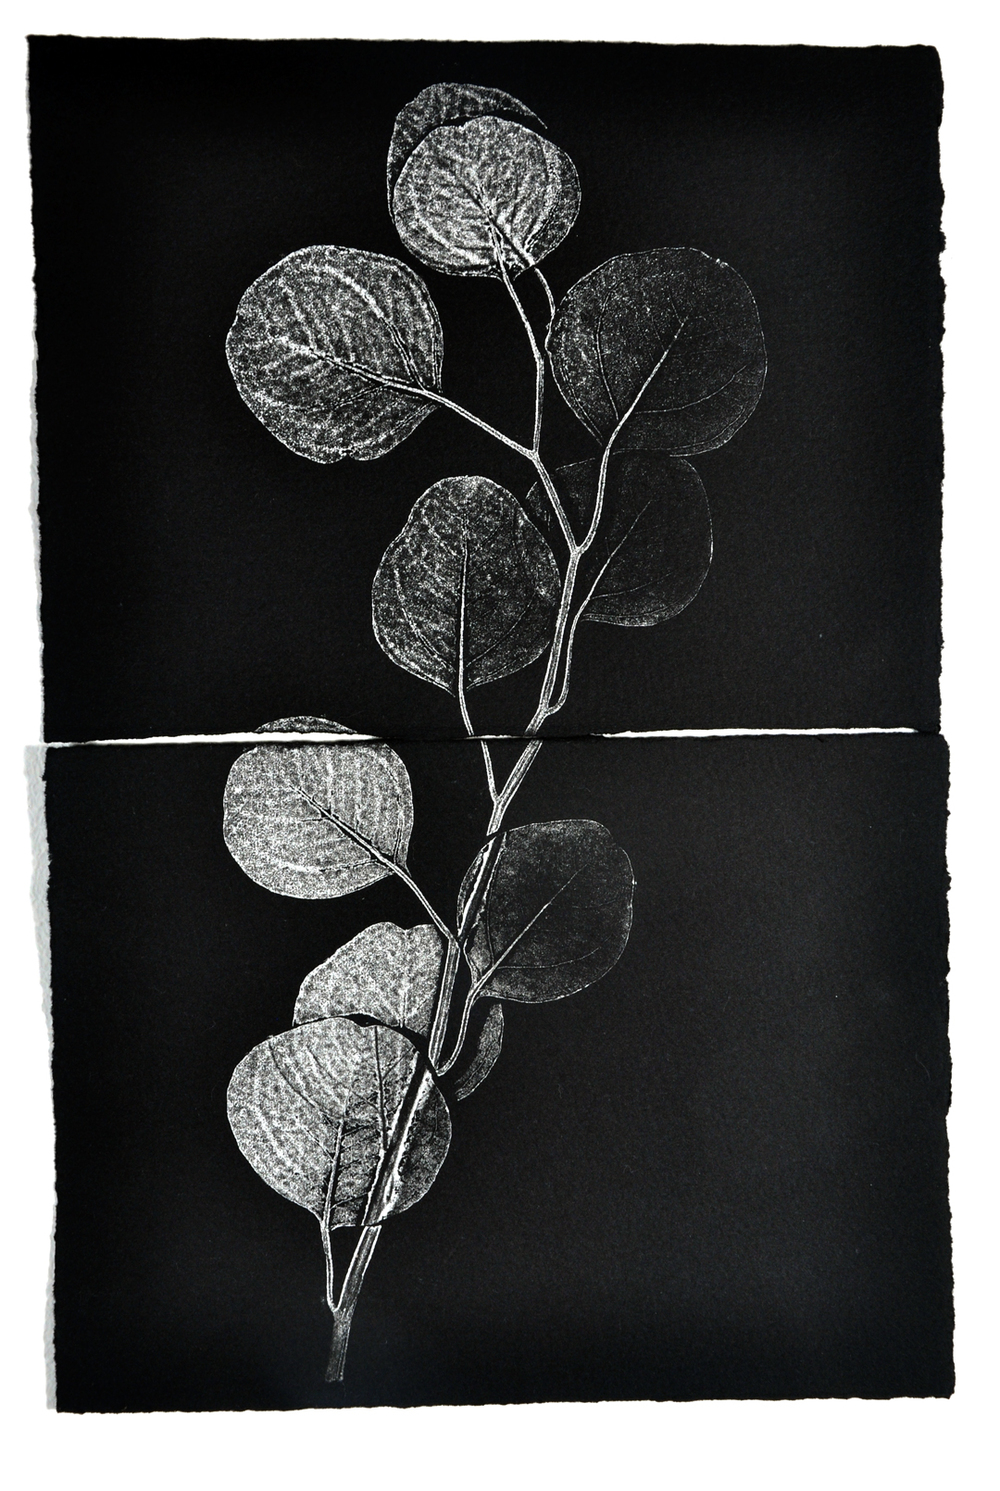 Monoprint on 2 pieces of paper, silver ink, 2014, Christine Mauersberger.